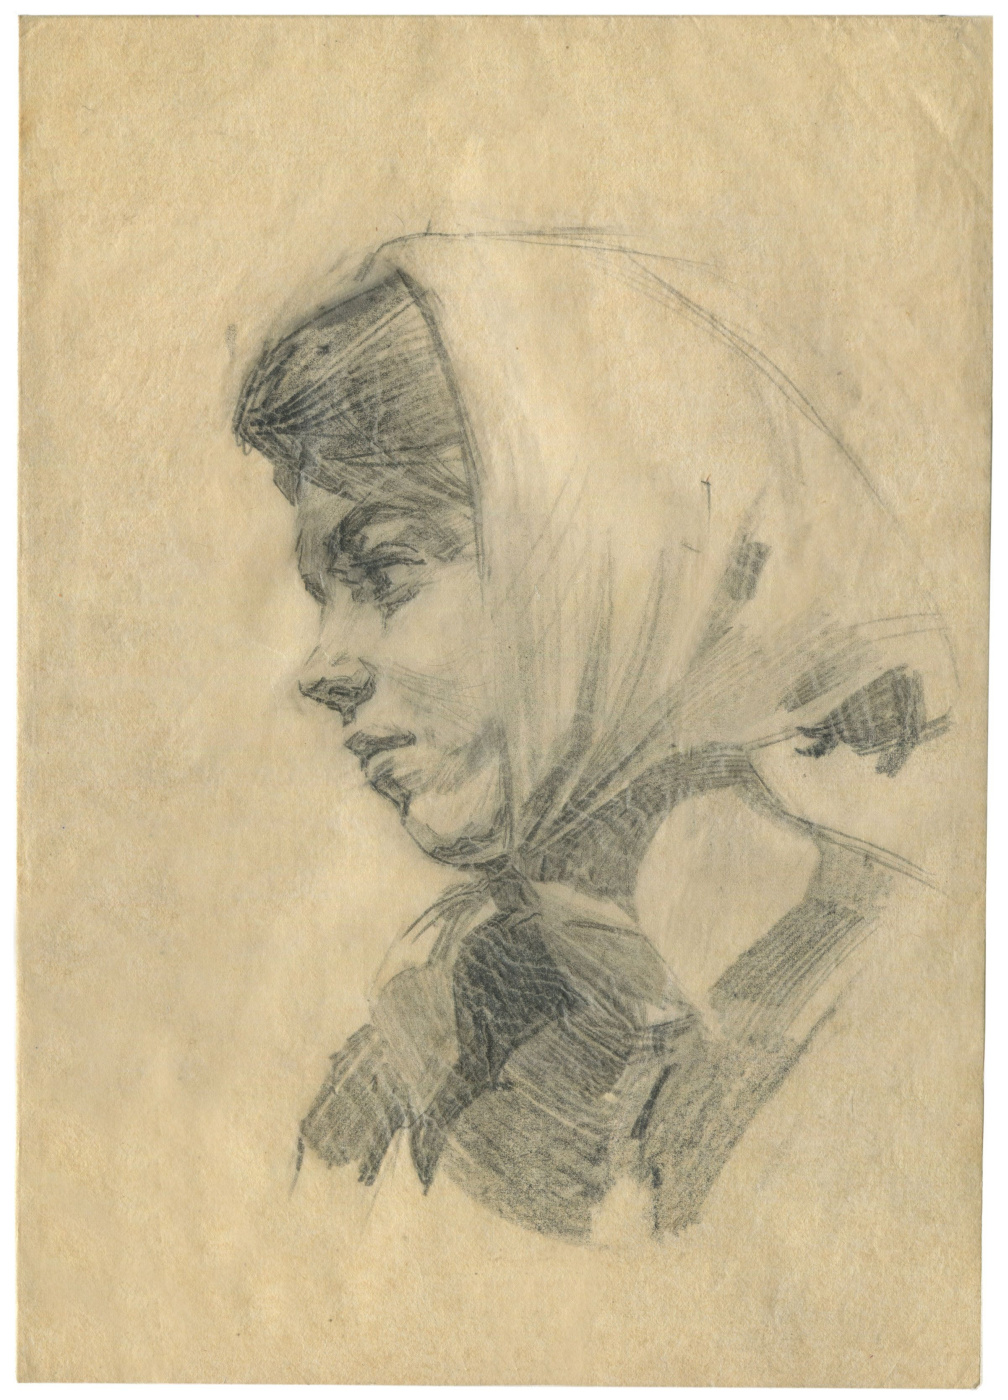 Alexandrovich Rudolf Pavlov. Sketch of a woman's head.